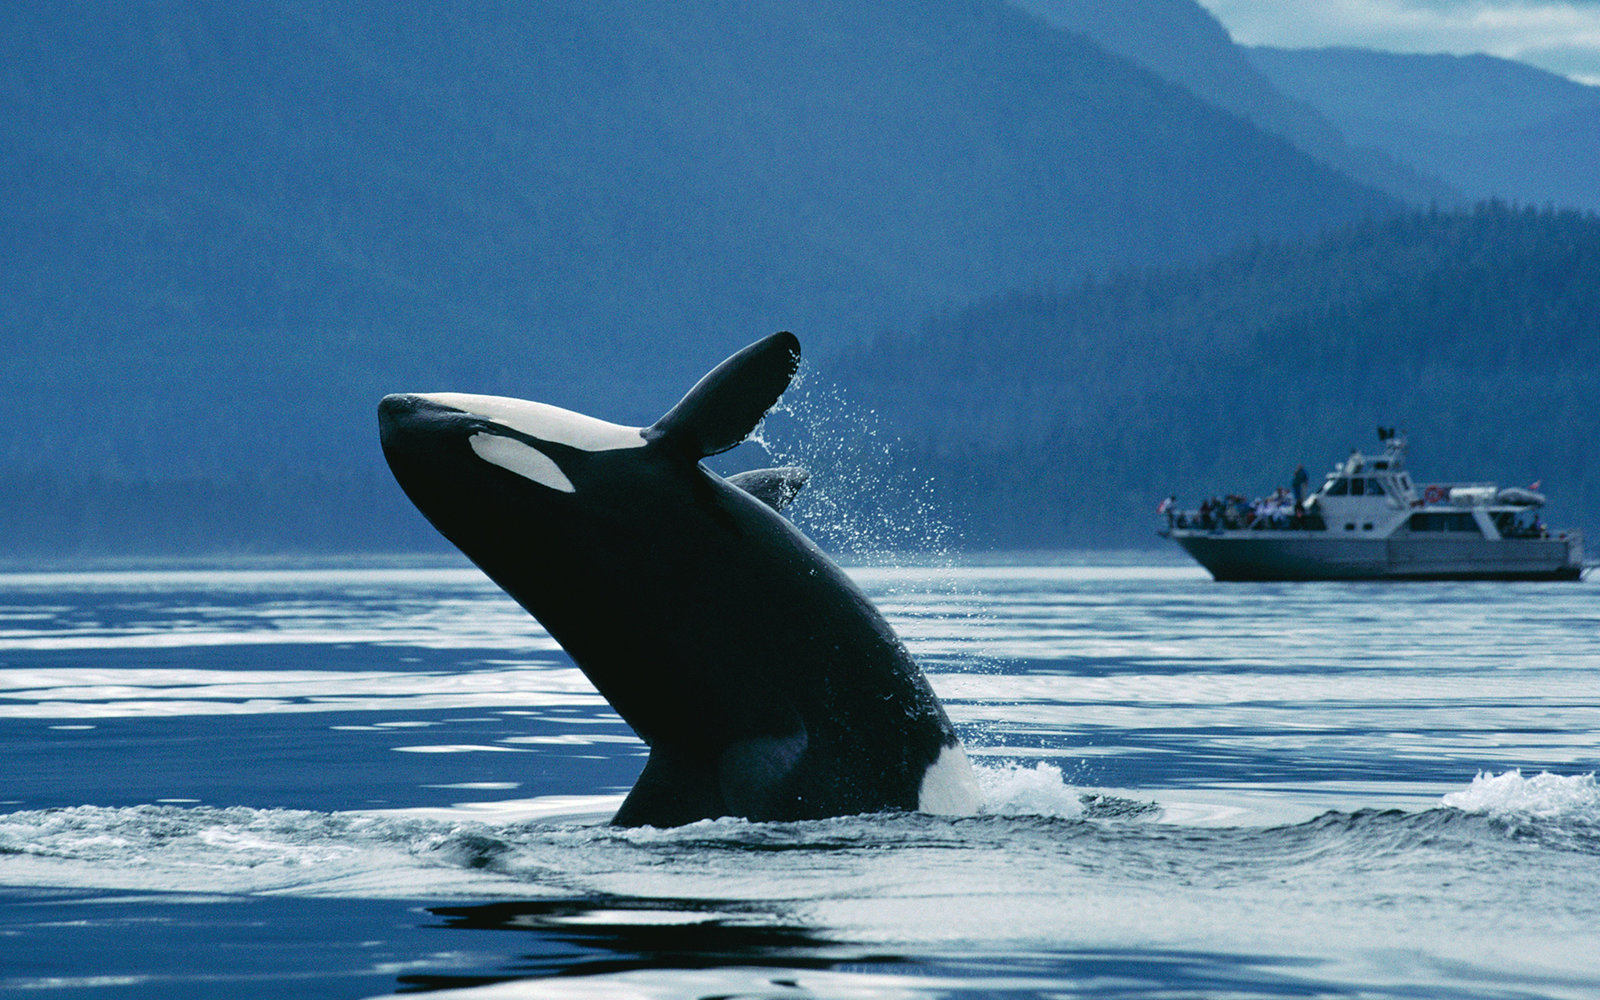 Whale-Watching in Robson Bight, British Colombia